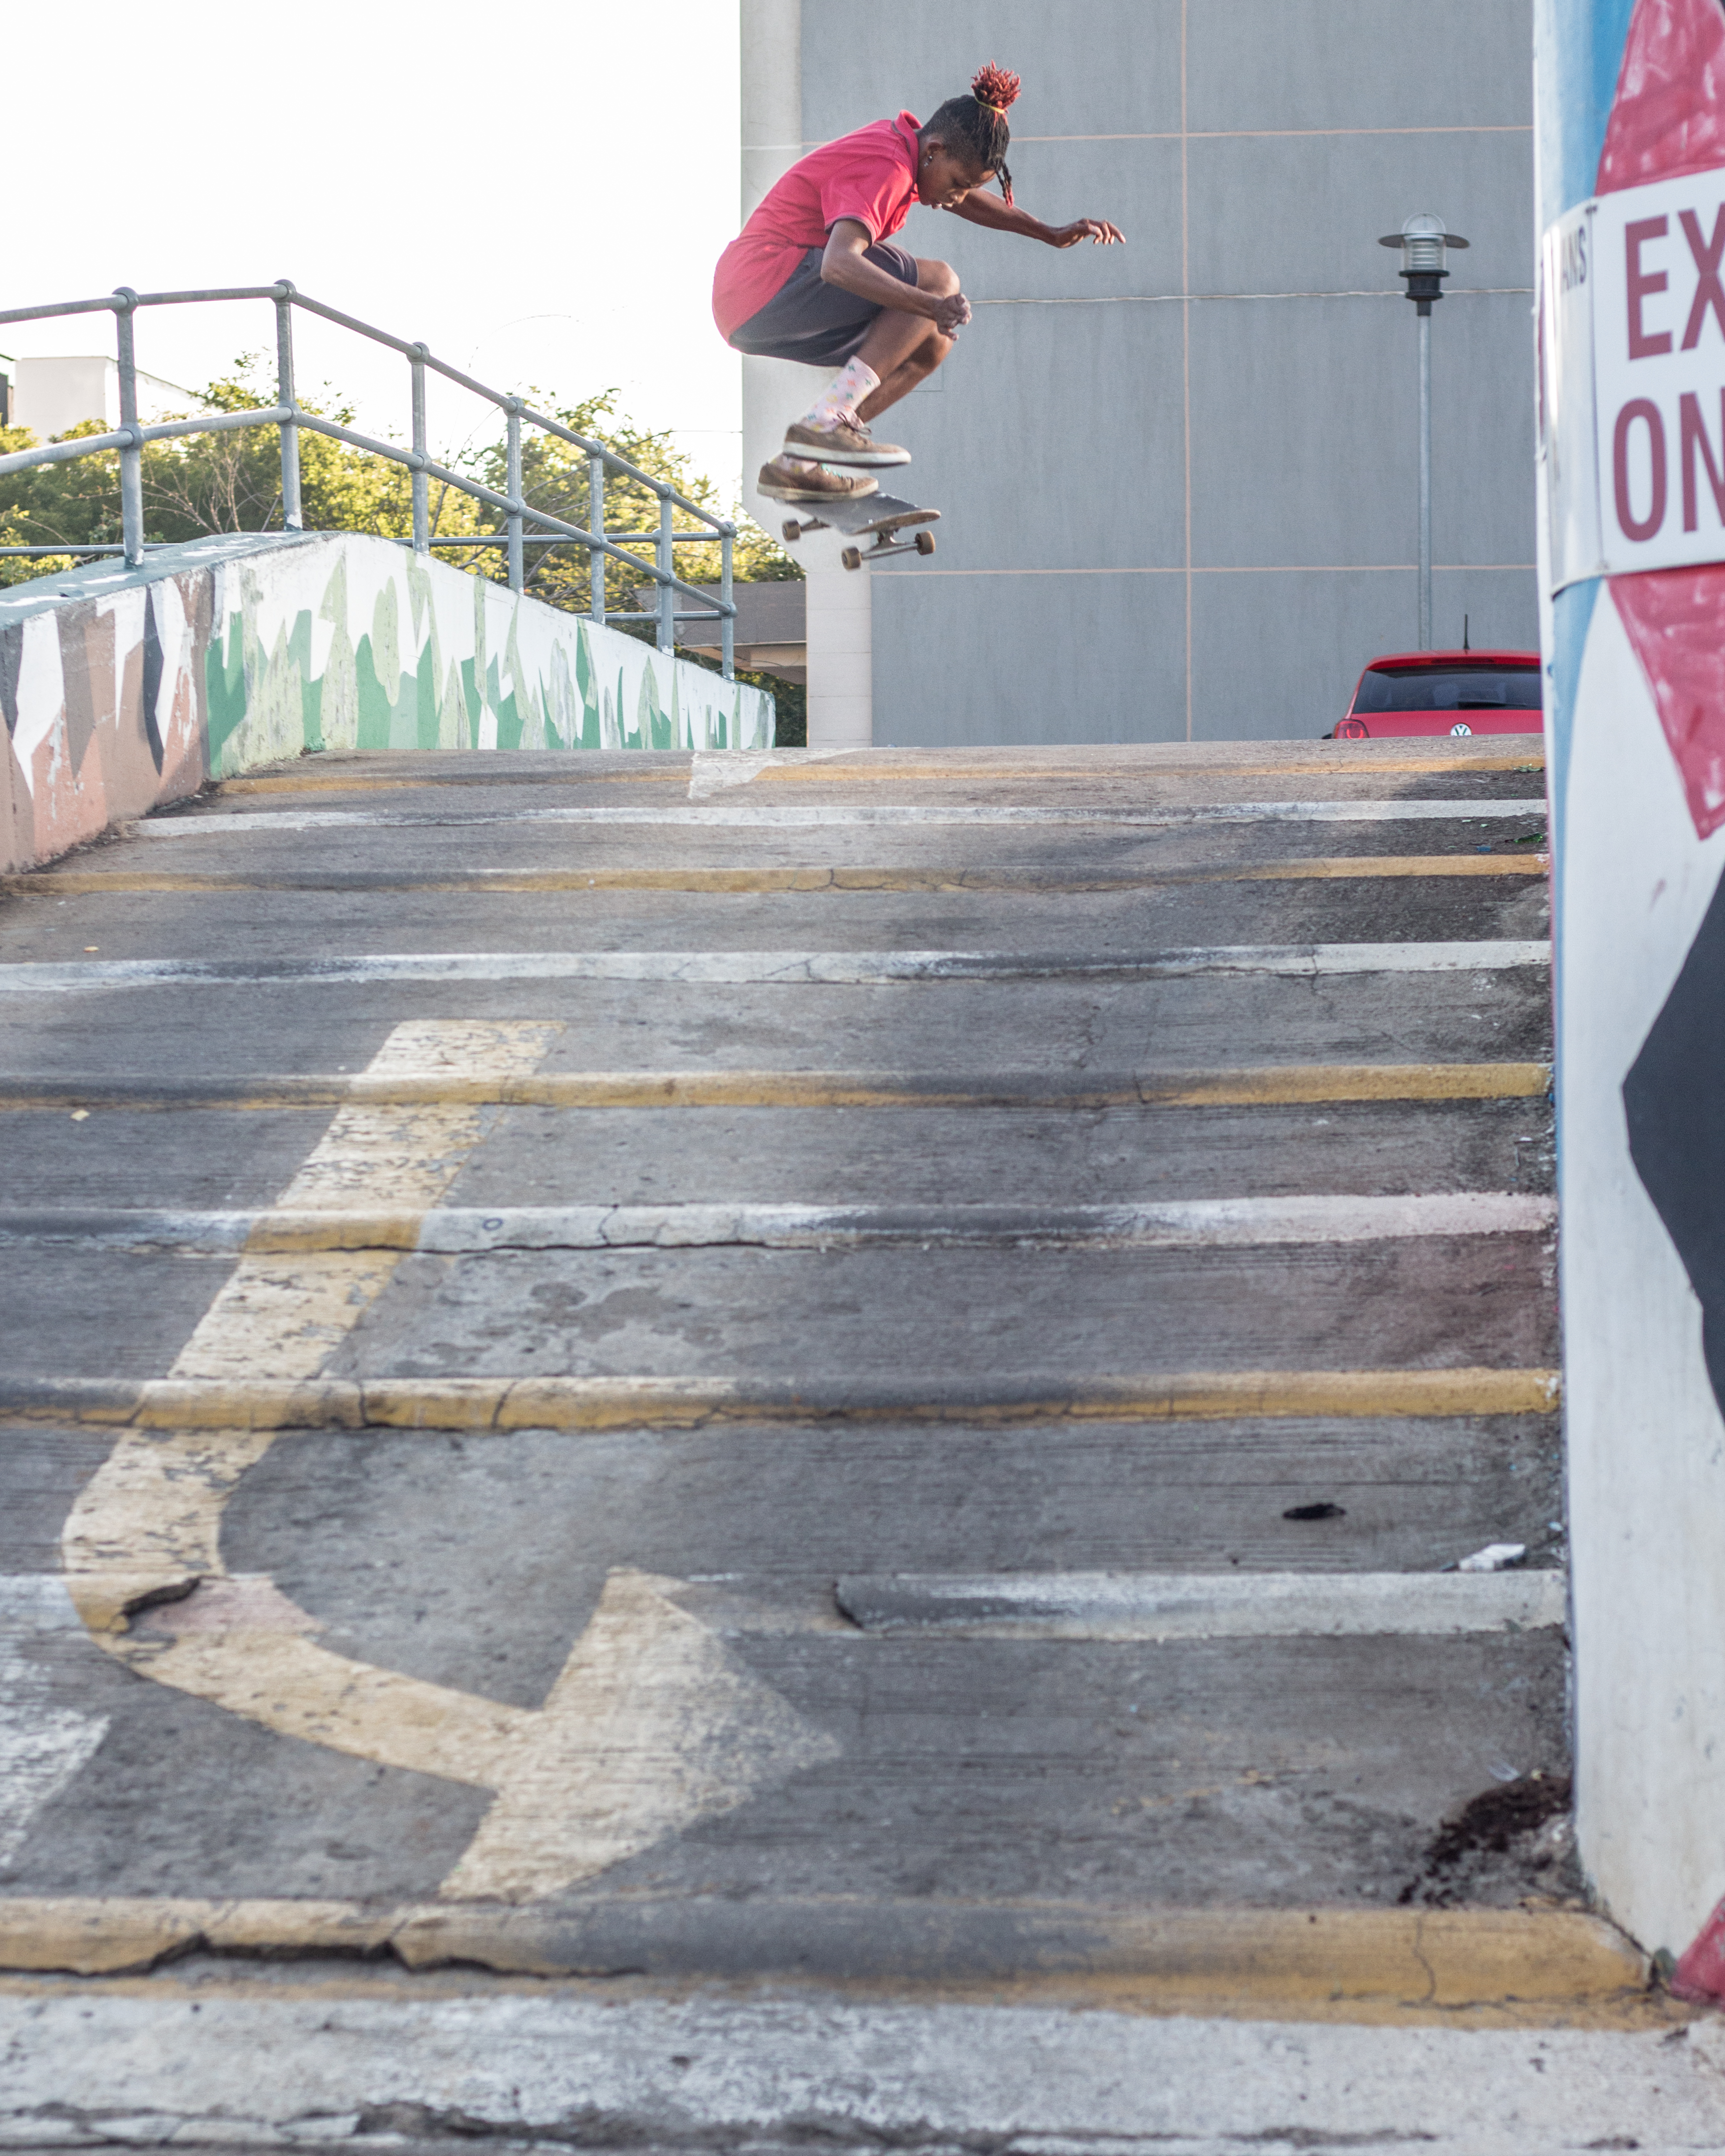 Jason Scott- Fakie inward heel into humps went down switch in Main Mall, Gaborone.